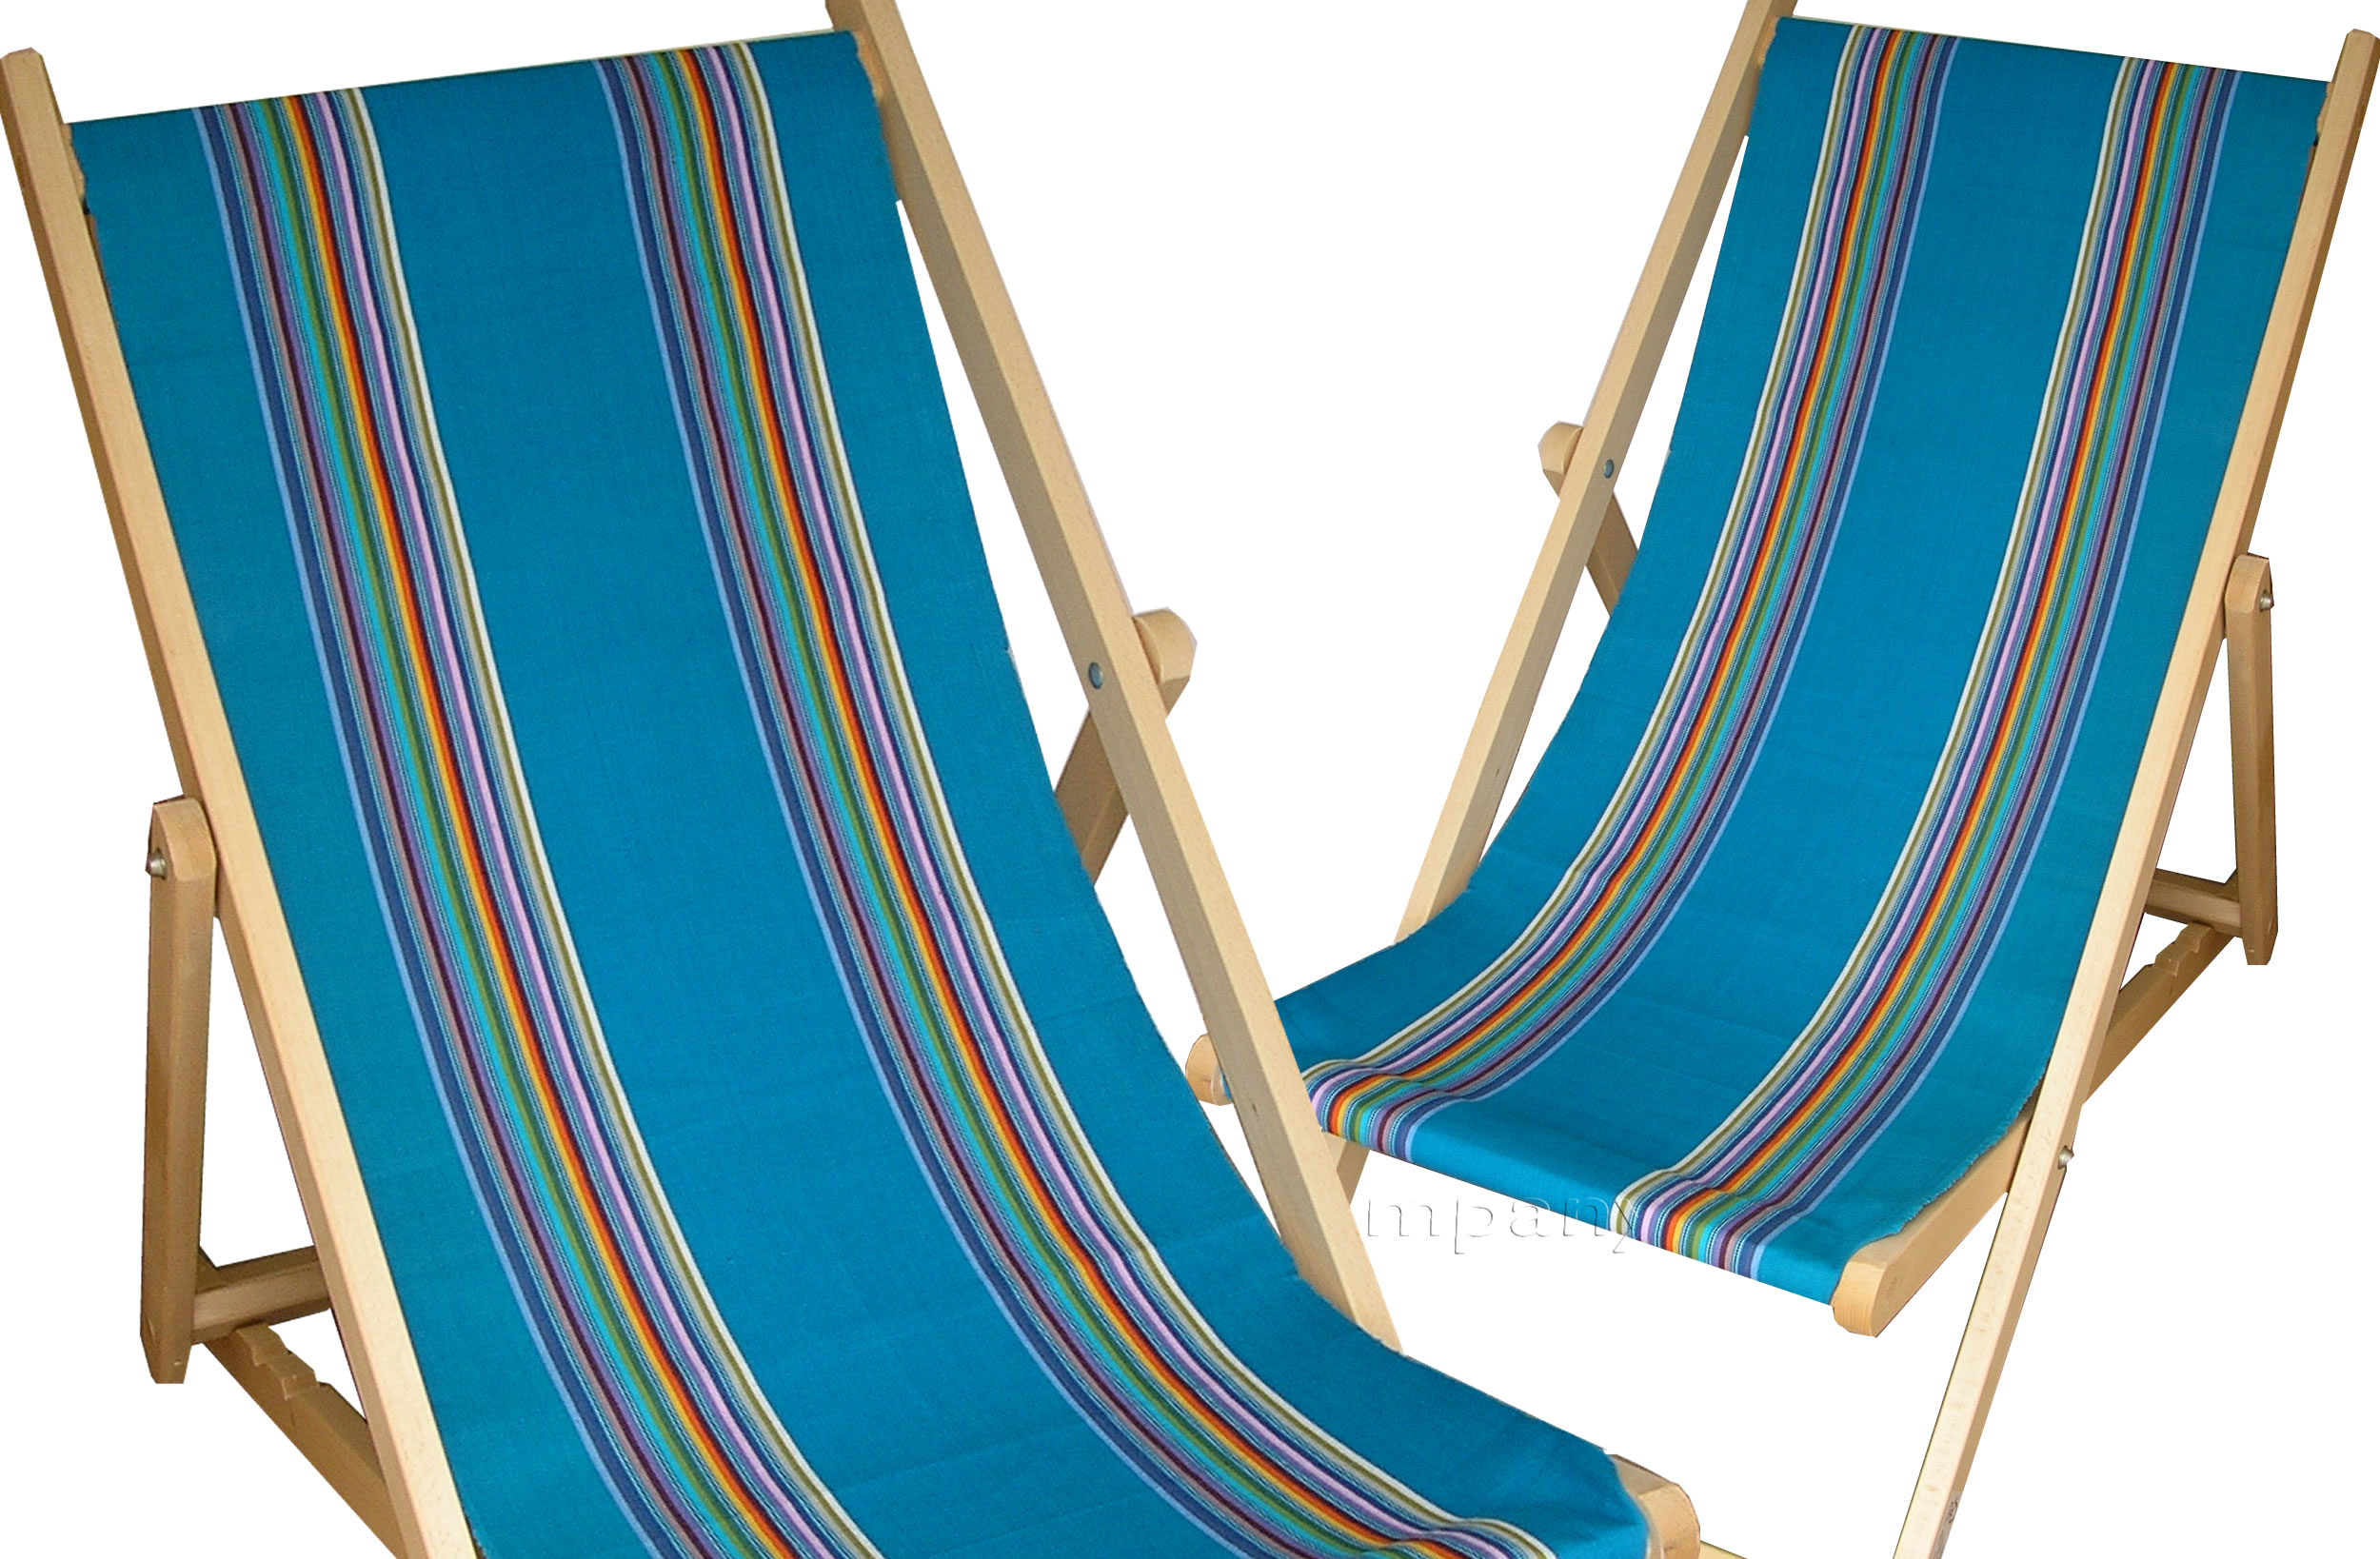 Dark Turquoise Deckchairs | Wooden Folding Deck Chairs Swimming Stripes